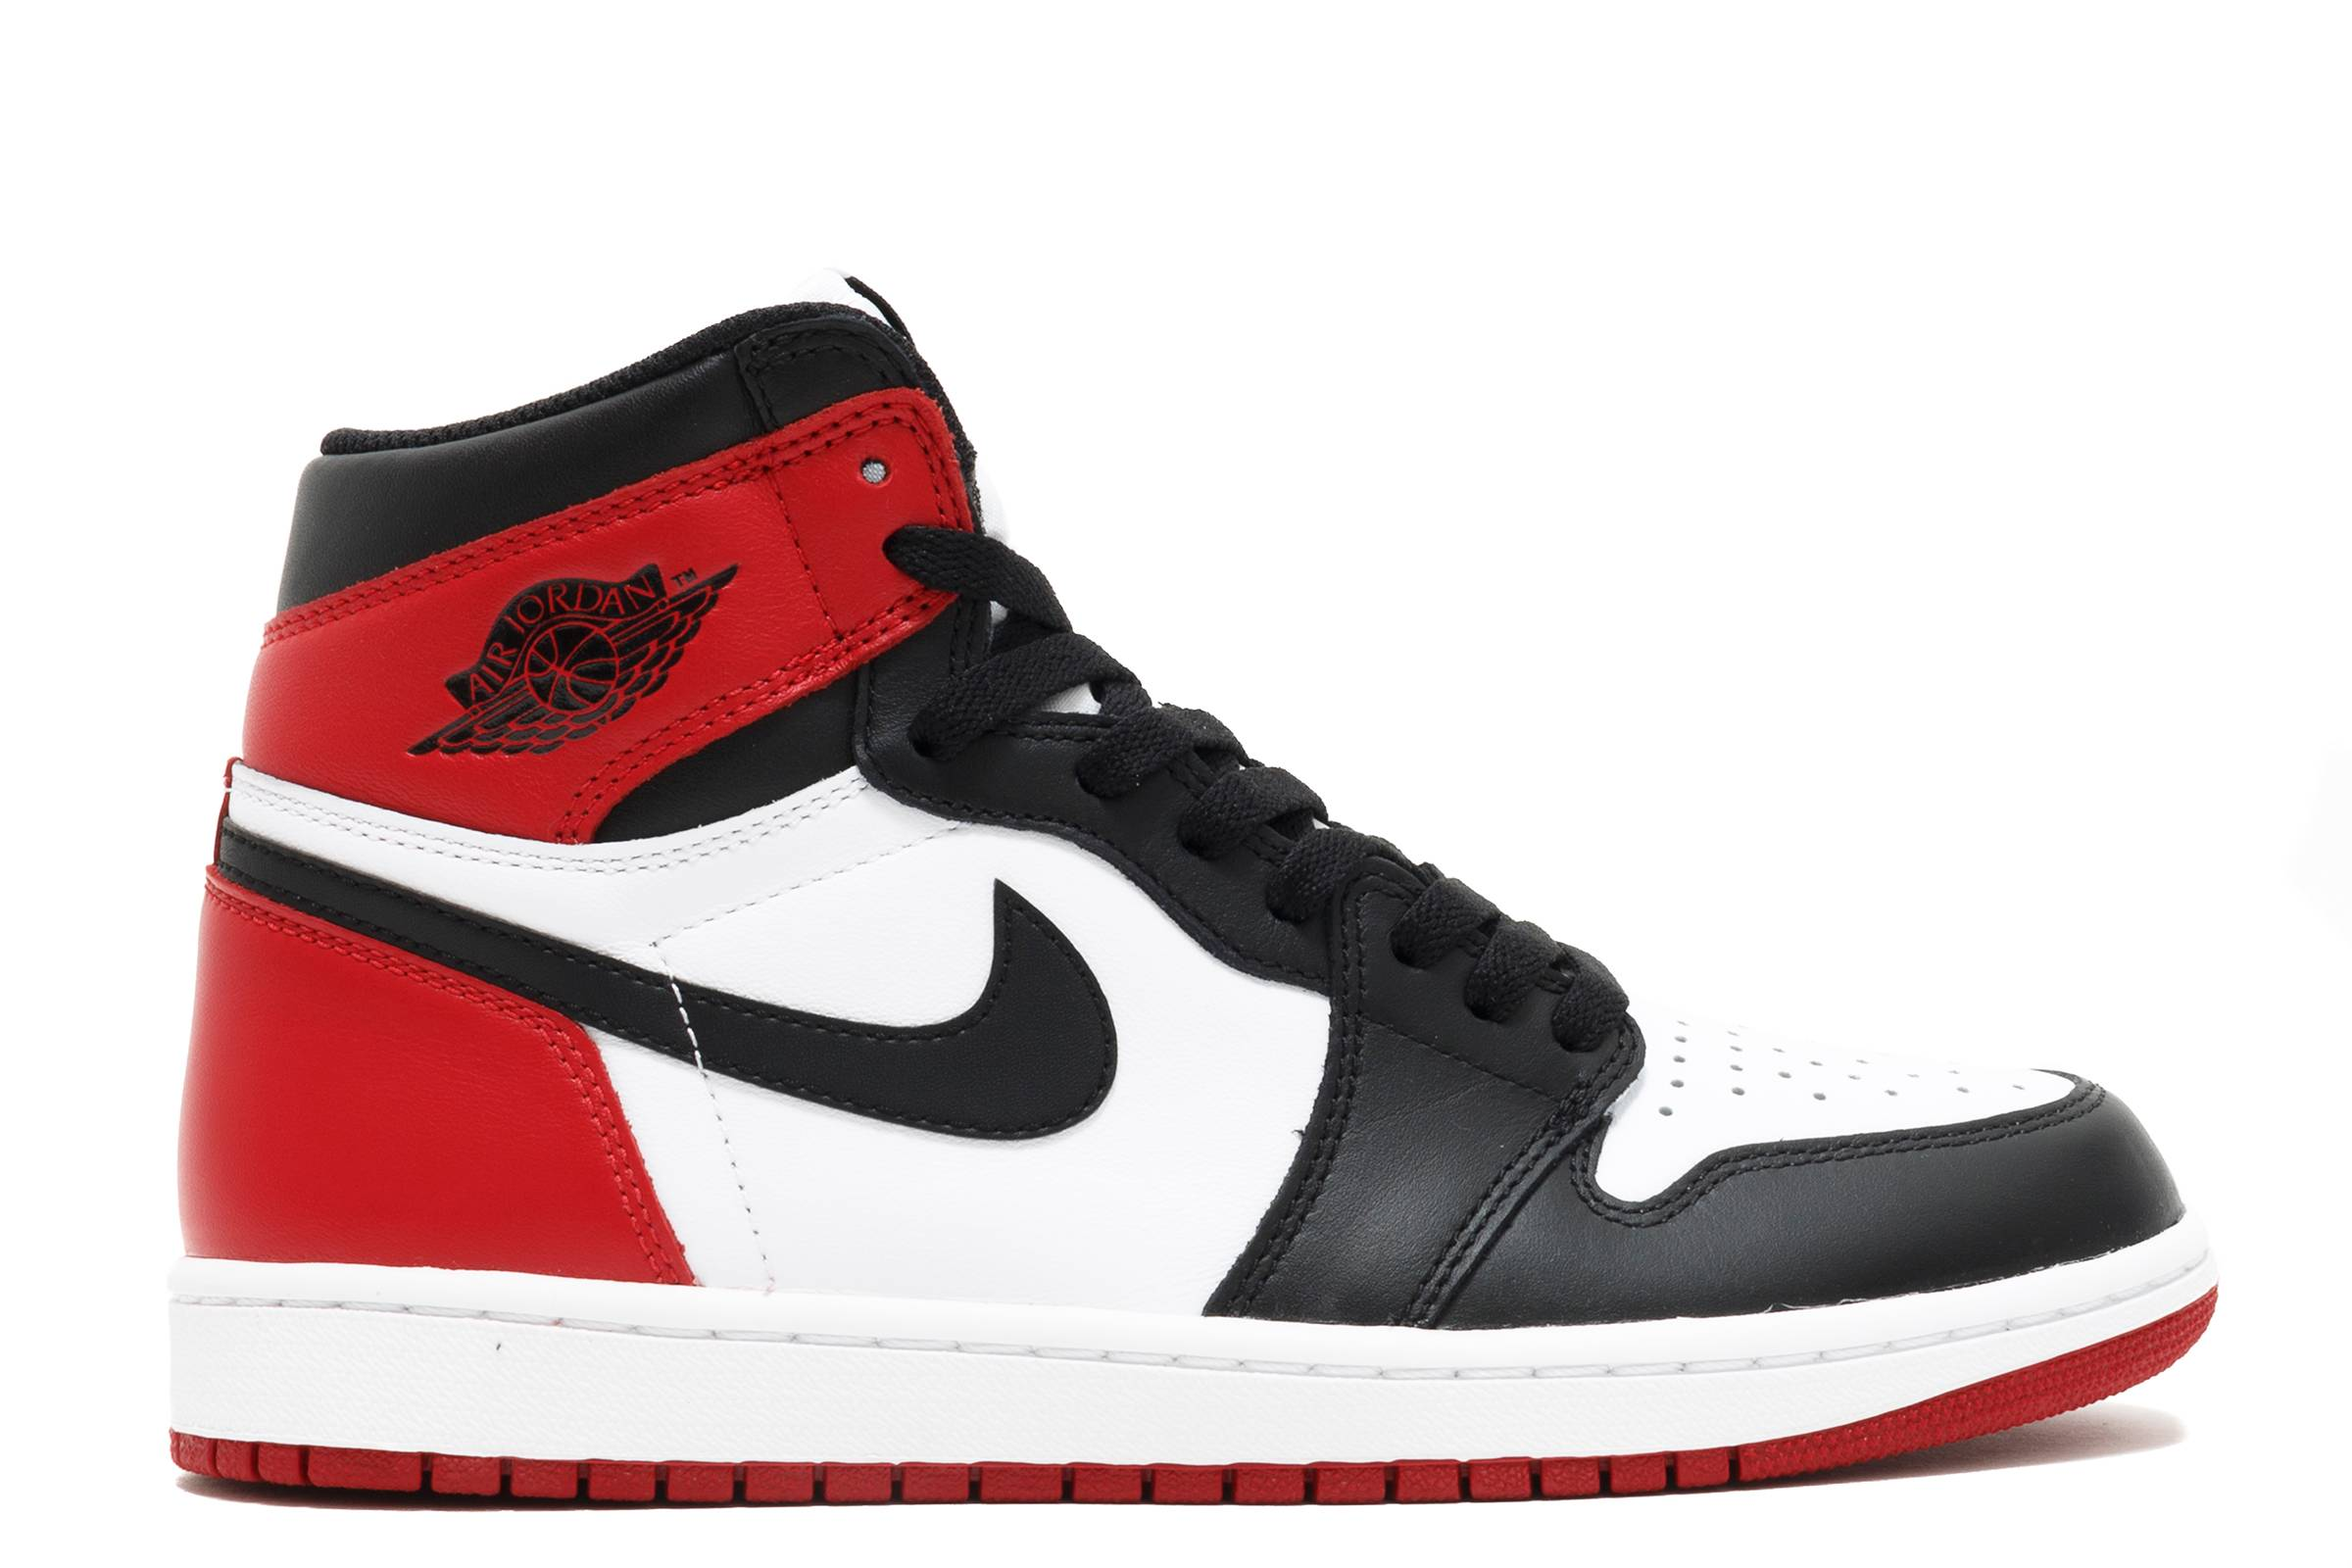 on sale bfb59 76289 The One That Started It All  A History of the Jordan 1